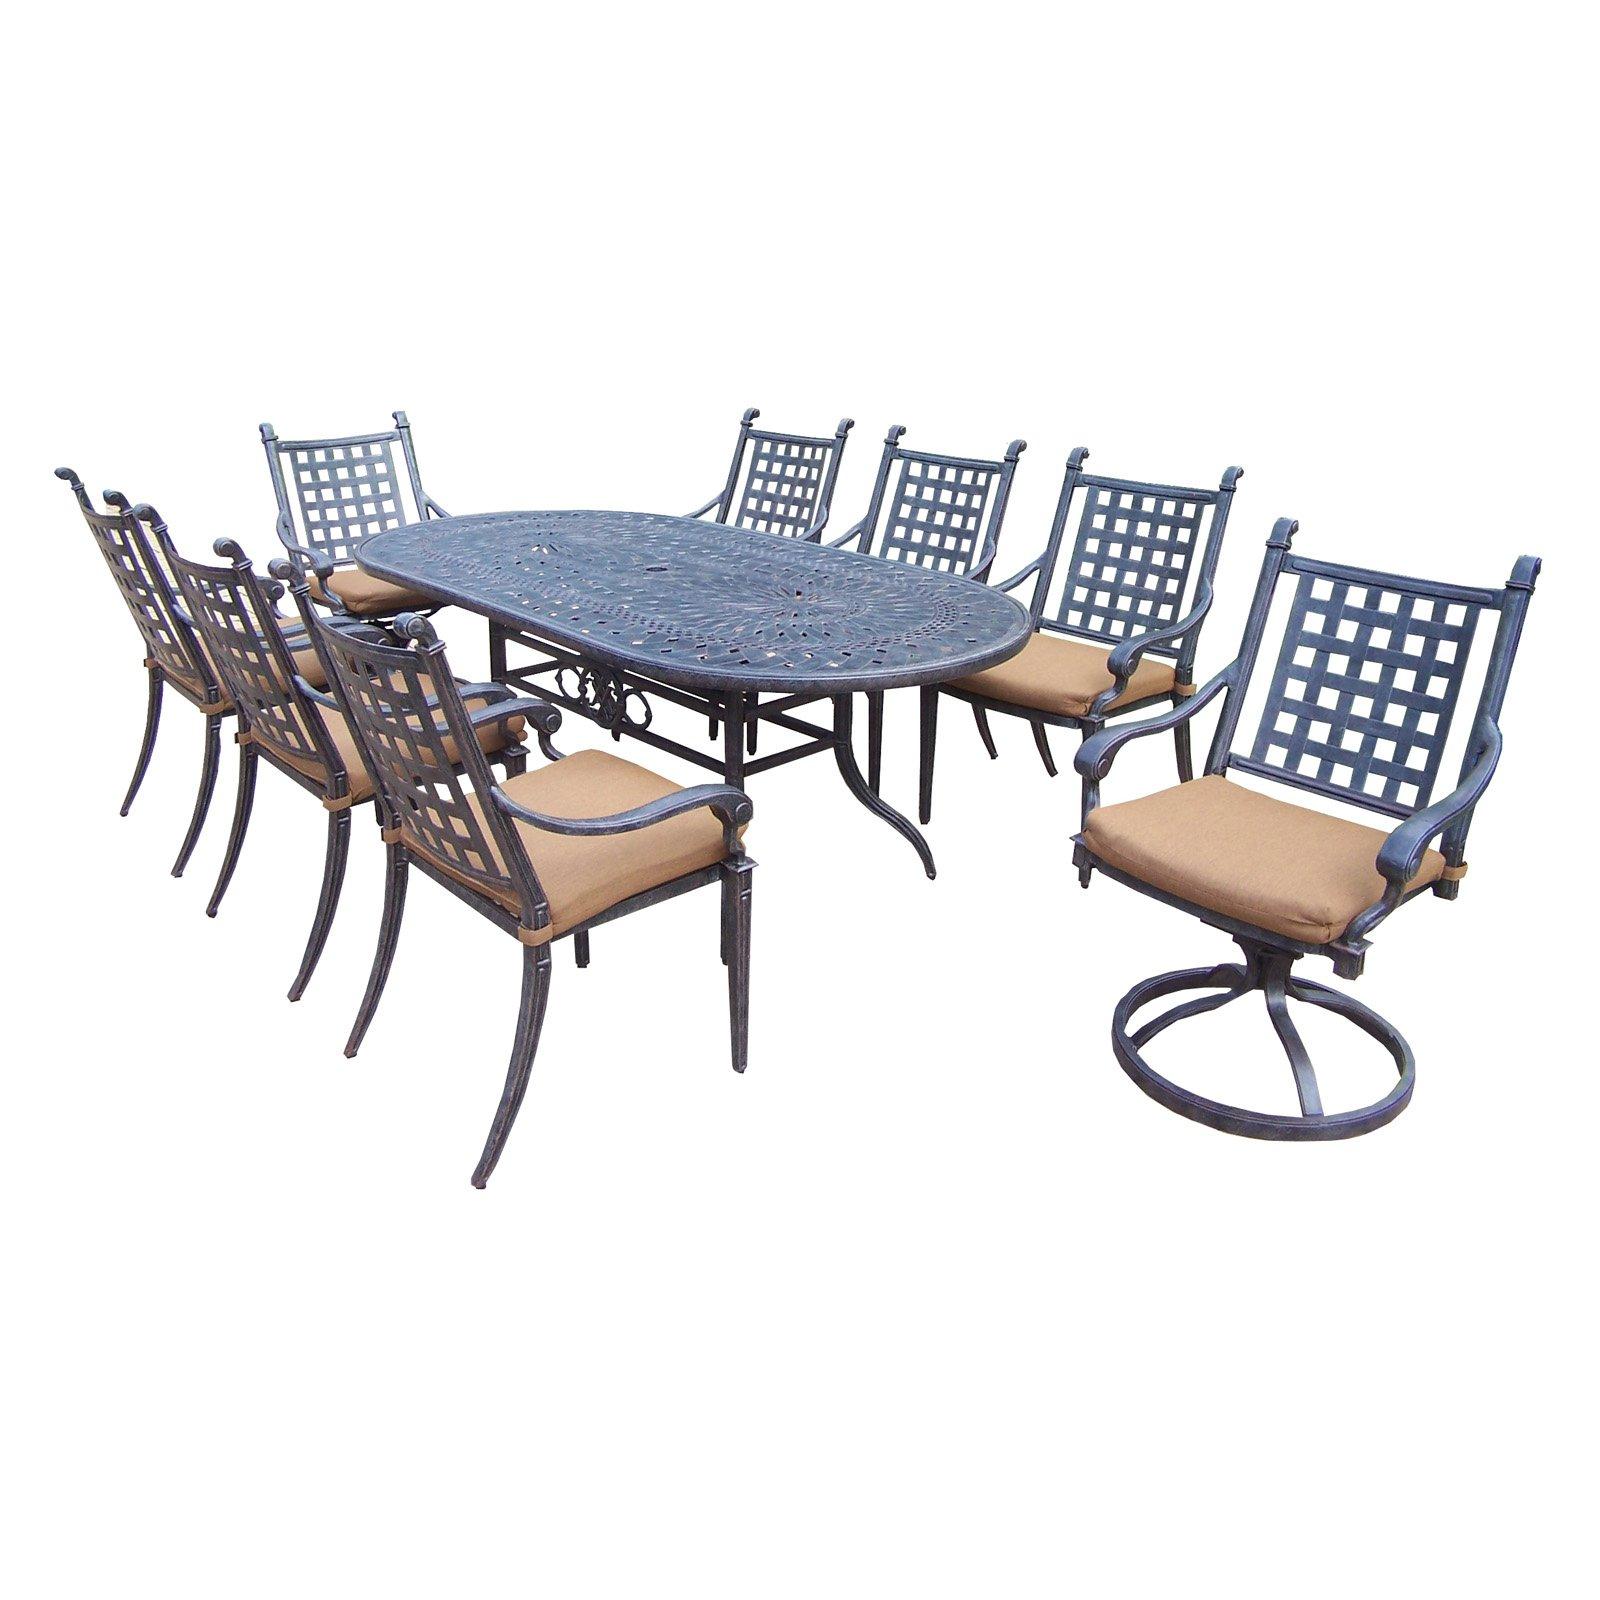 Oakland Living Belmont 9 Piece Oval Patio Dining Room Set by Oakland Living